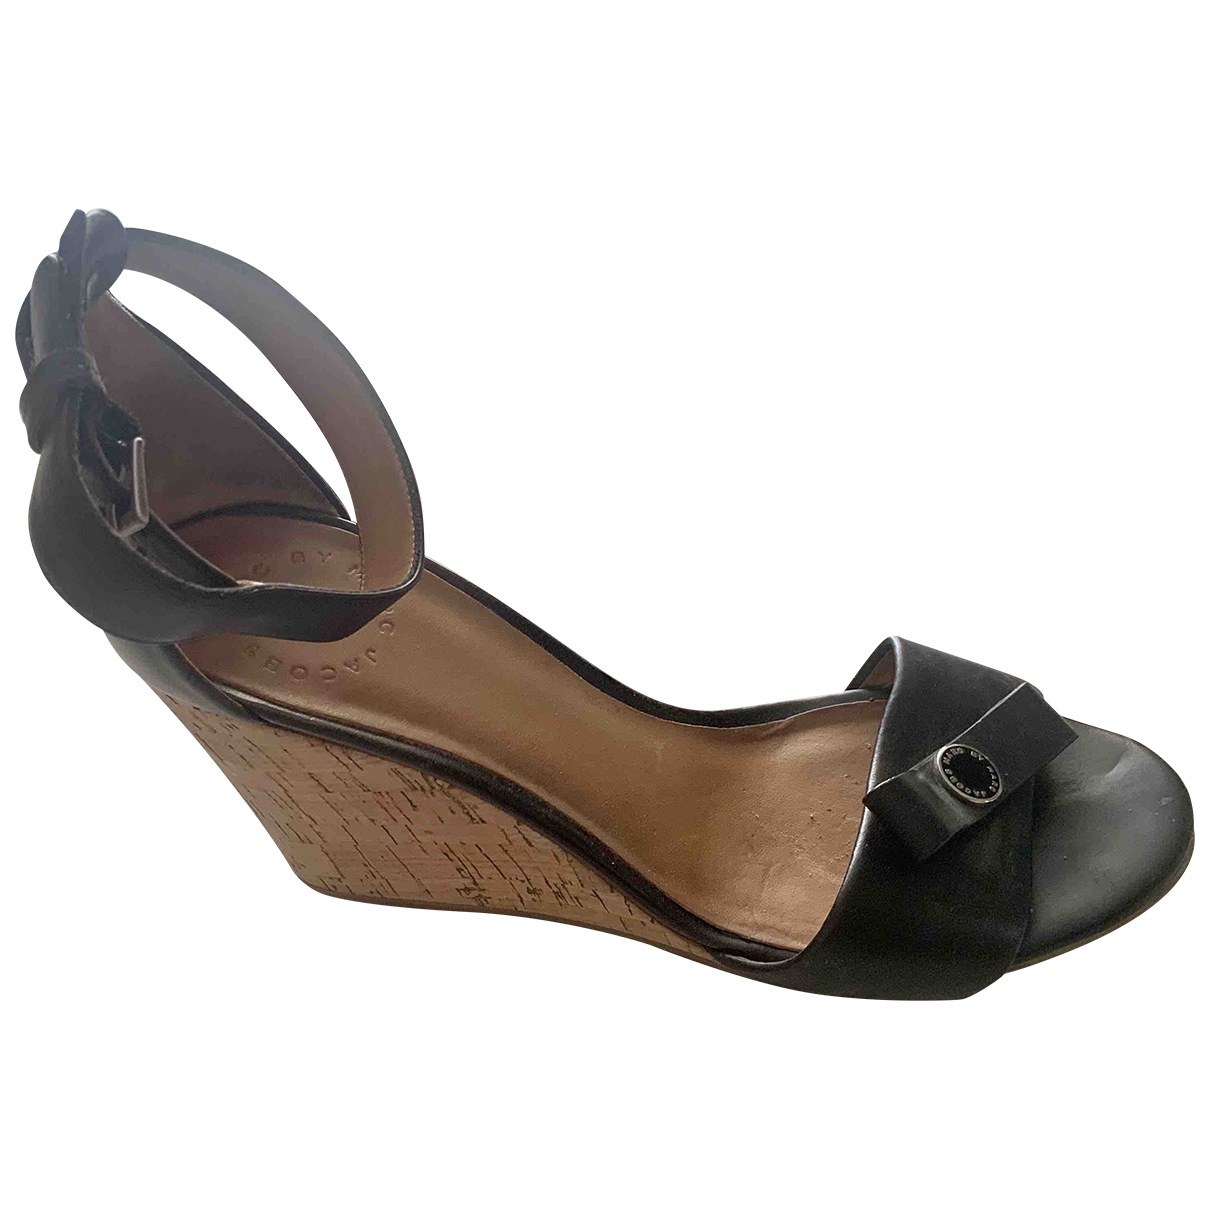 Marc By Marc Jacobs \N Black Leather Sandals for Women 7.5 US